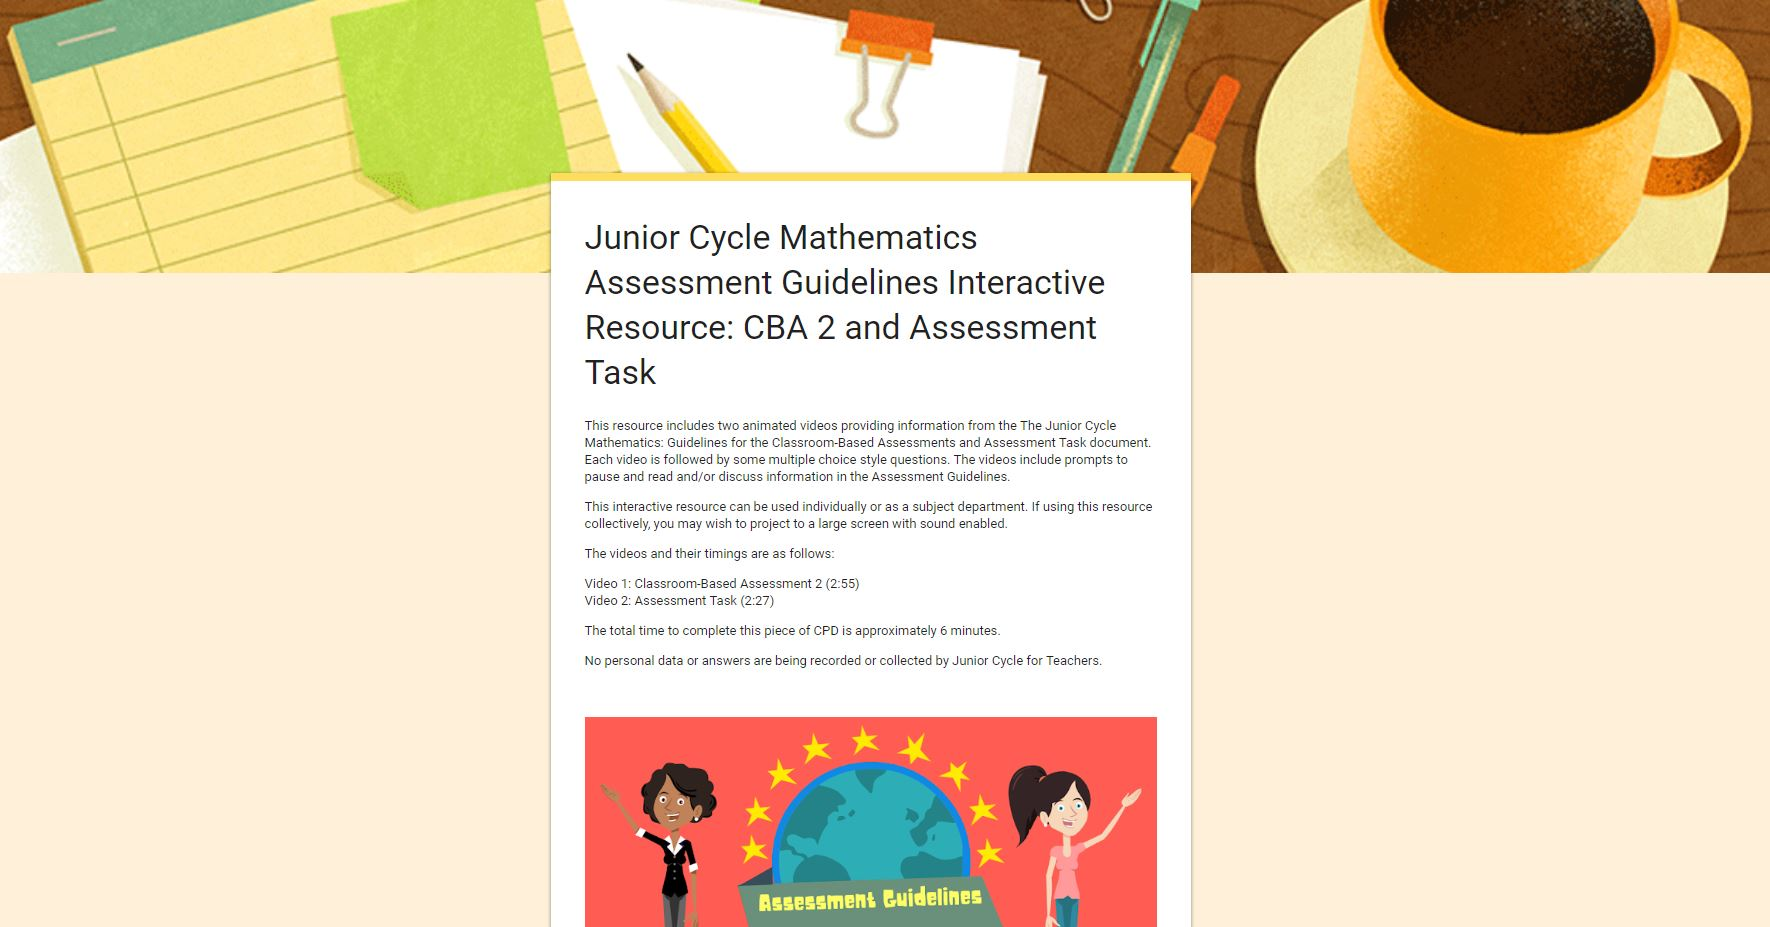 Assessment Guidelines Interactive Resource - Section Three CBA 2 and the Assessment Task